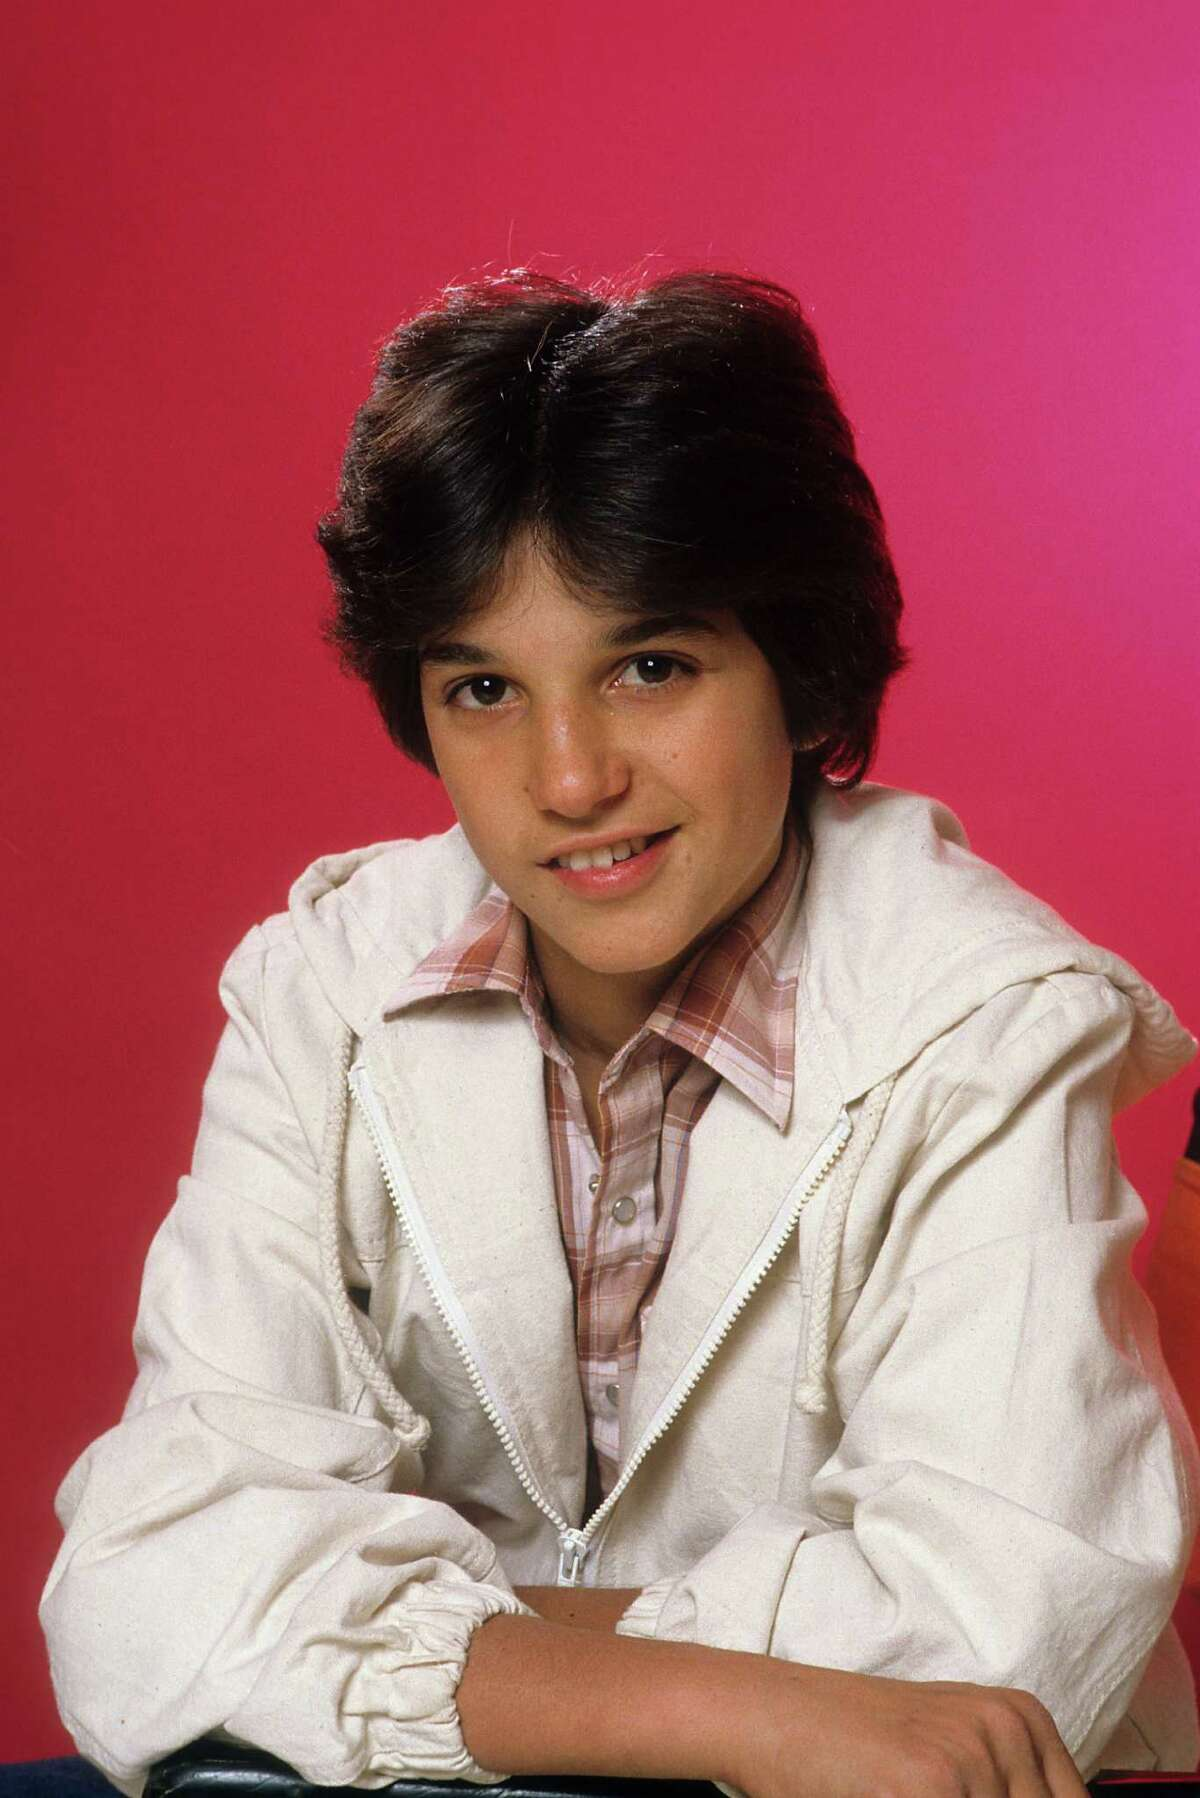 """Ralph Macchio (JUST LOOK AT THIS GUY), born on Long Island, N.Y., got his start in the late-'70s doing TV commercials for Bubble Yum and Dr. Pepper.He got his first major role playing Jeremy Andretti in the TV series, """"Eight is Enough."""""""